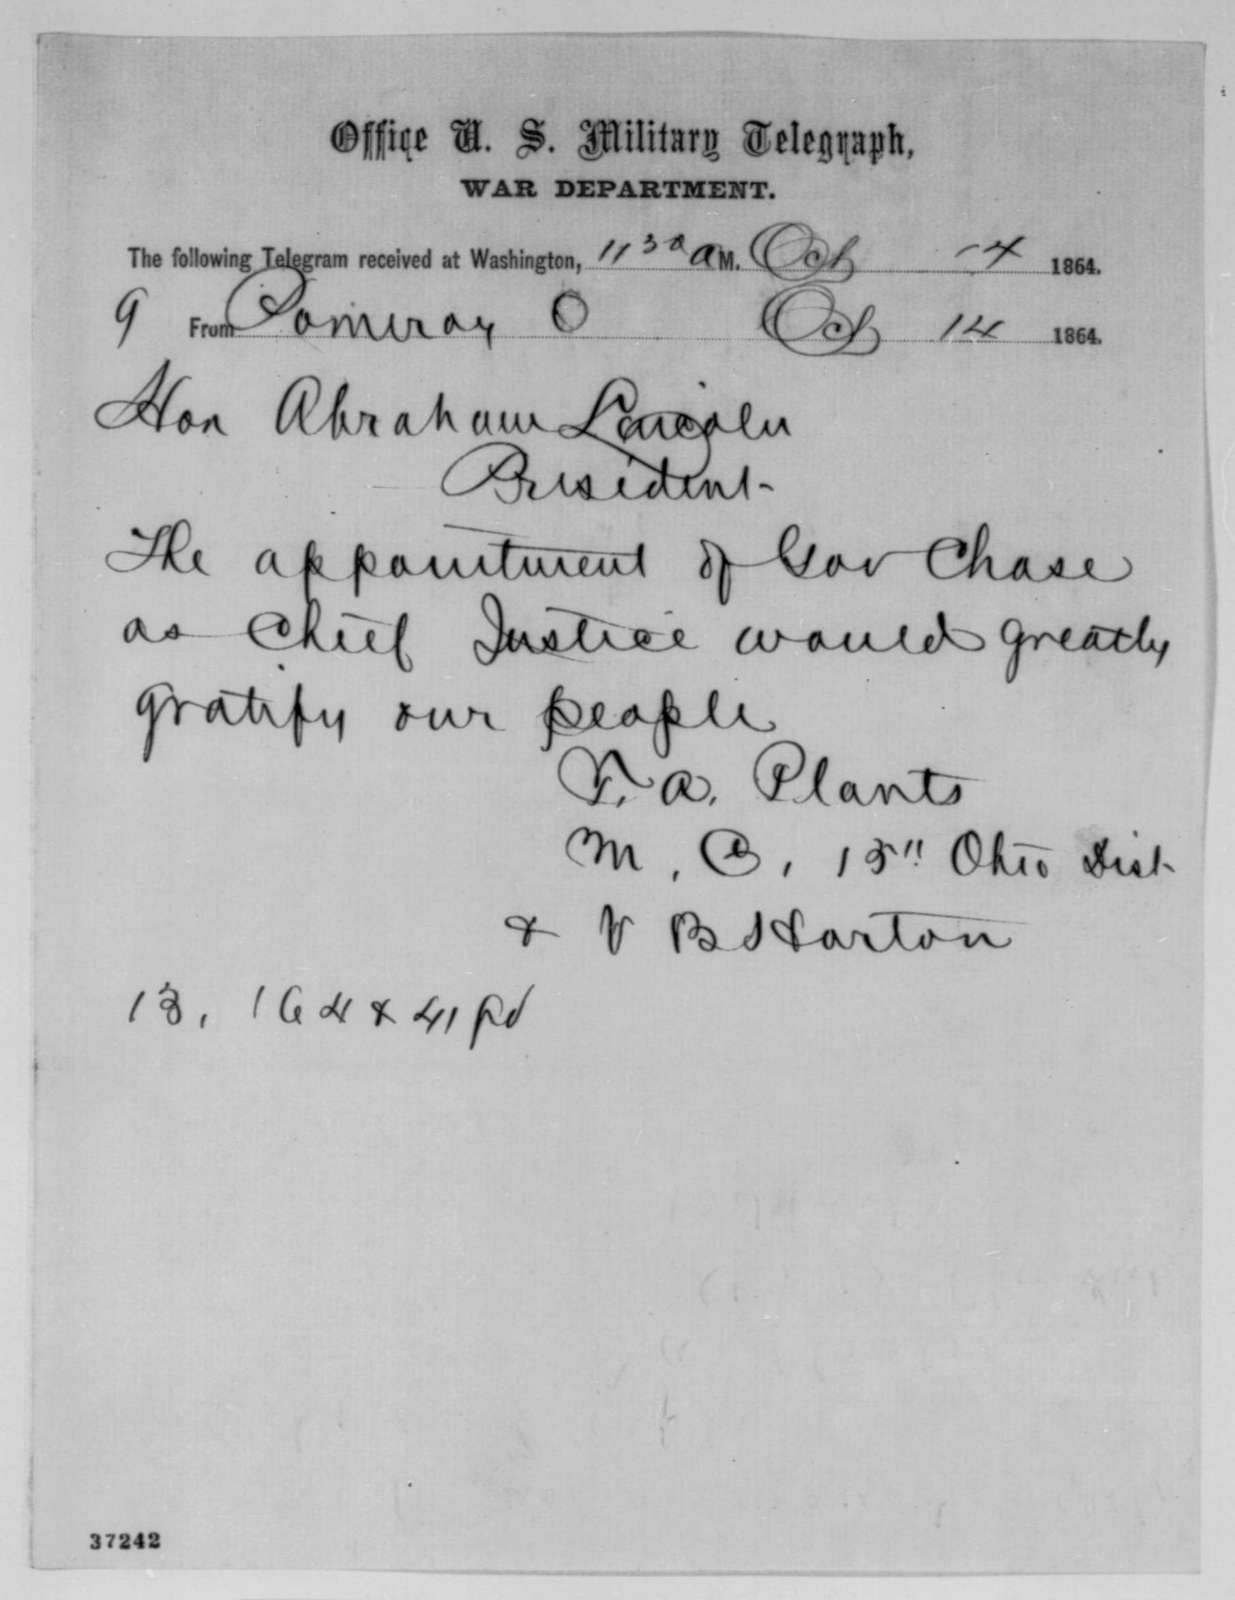 Tobias Avery Plants and V. B. Horton to Abraham Lincoln, Friday, October 14, 1864  (Telegram recommending Chase for Chief Justice)